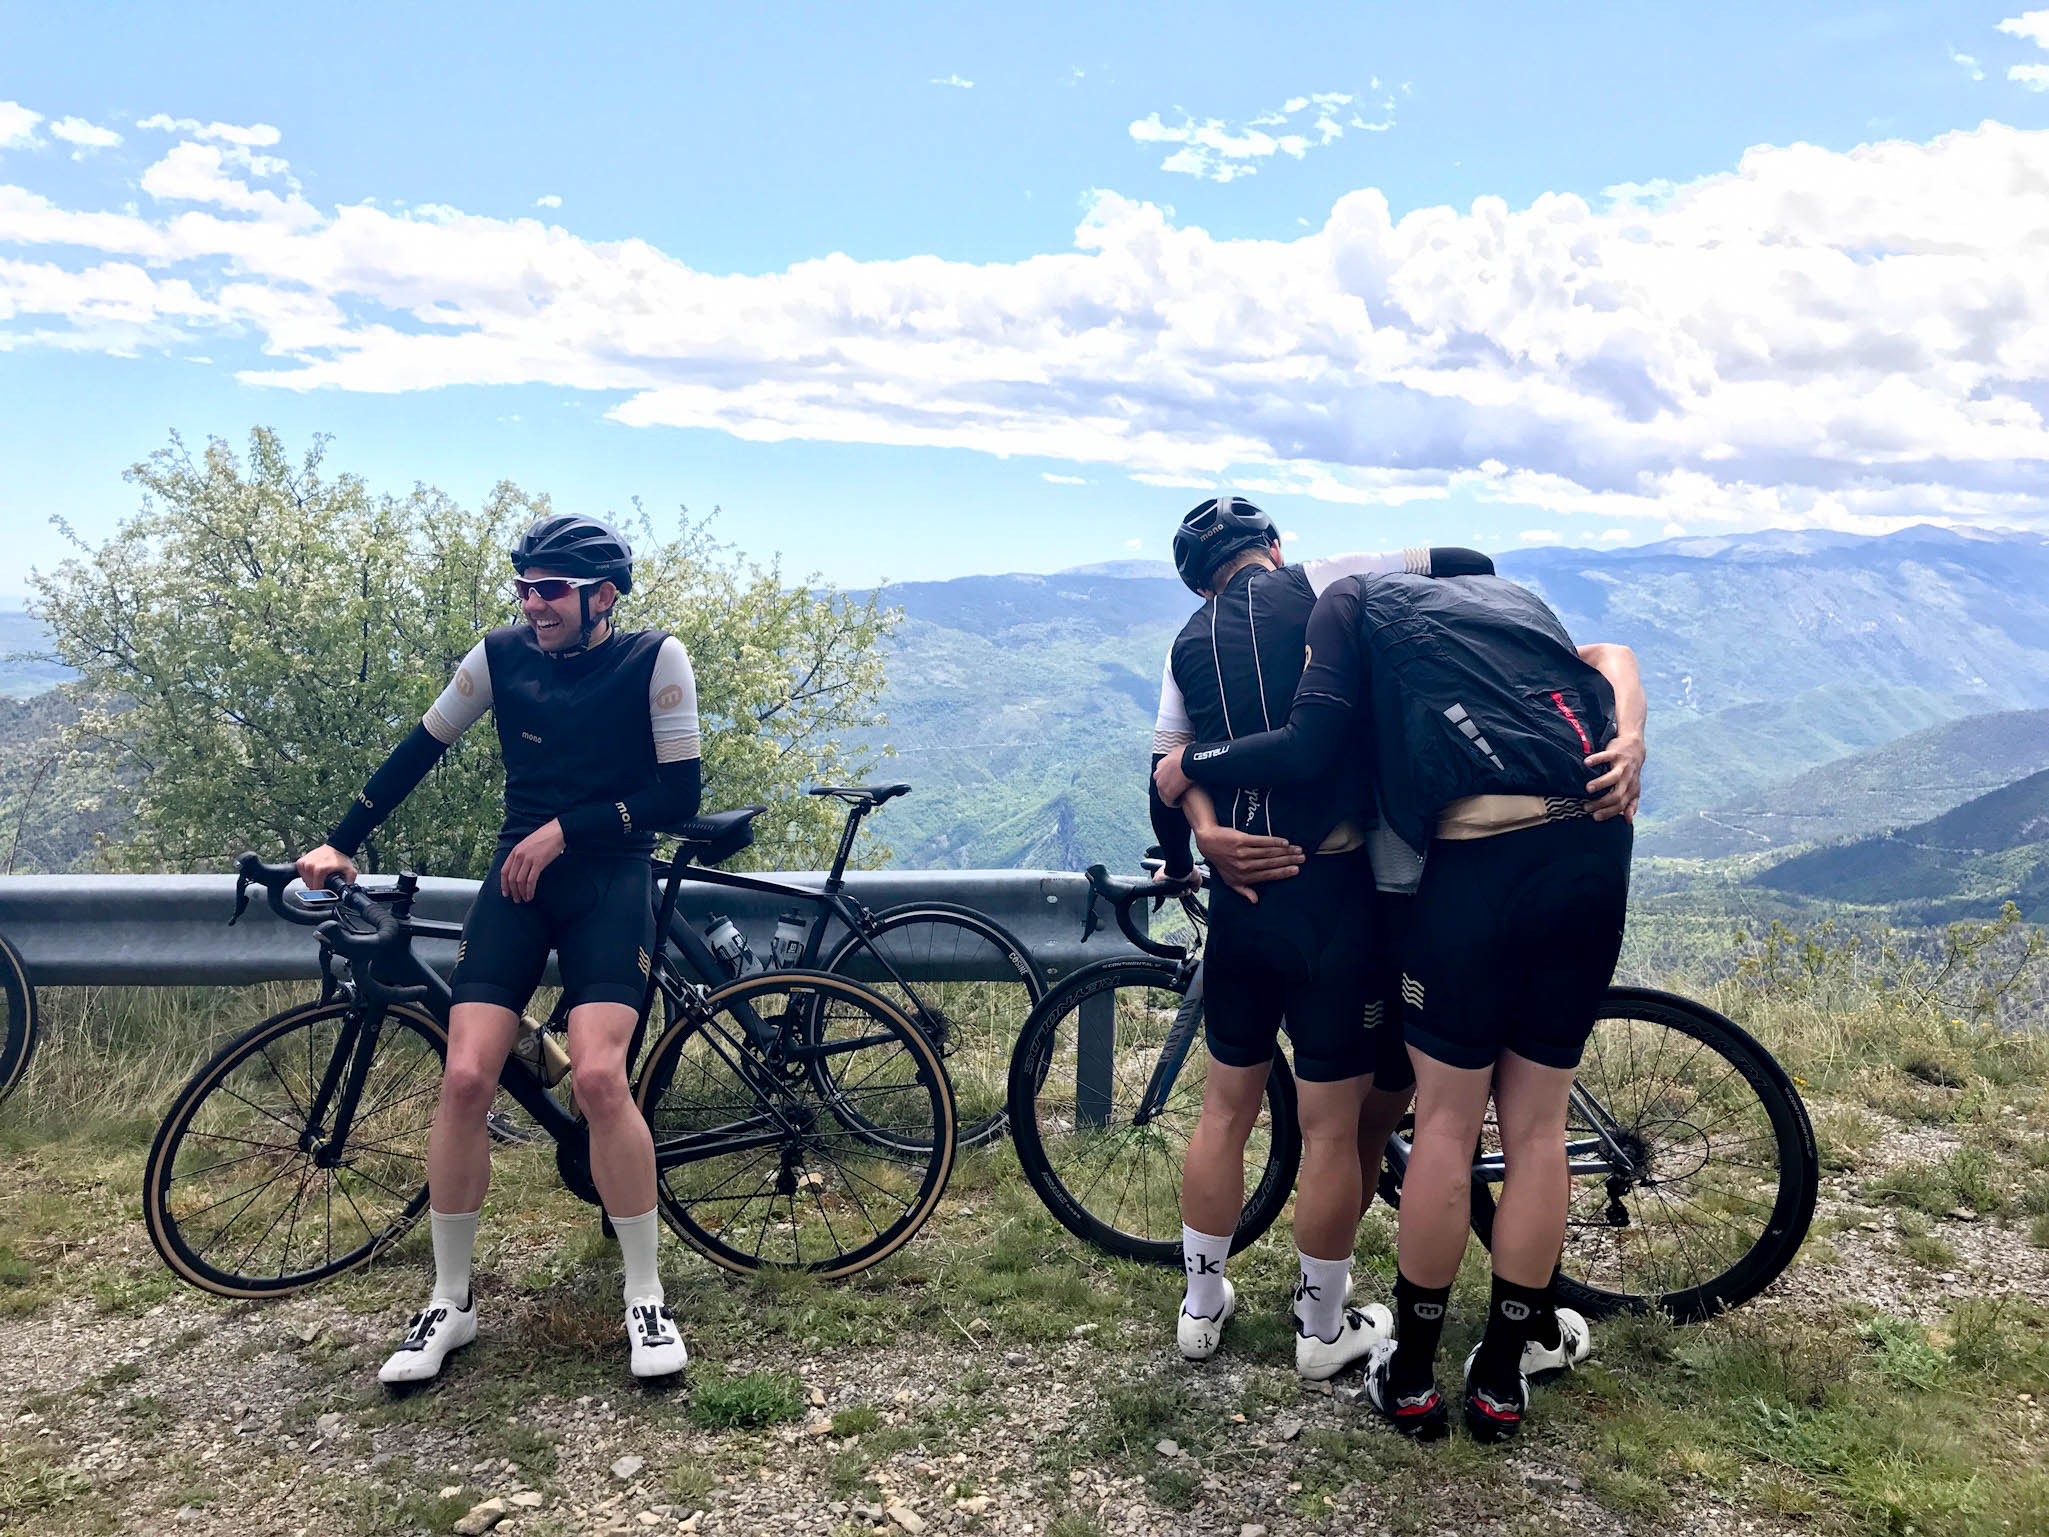 Stay warm on the descent with gilets, arm warmers and by hugging team mates